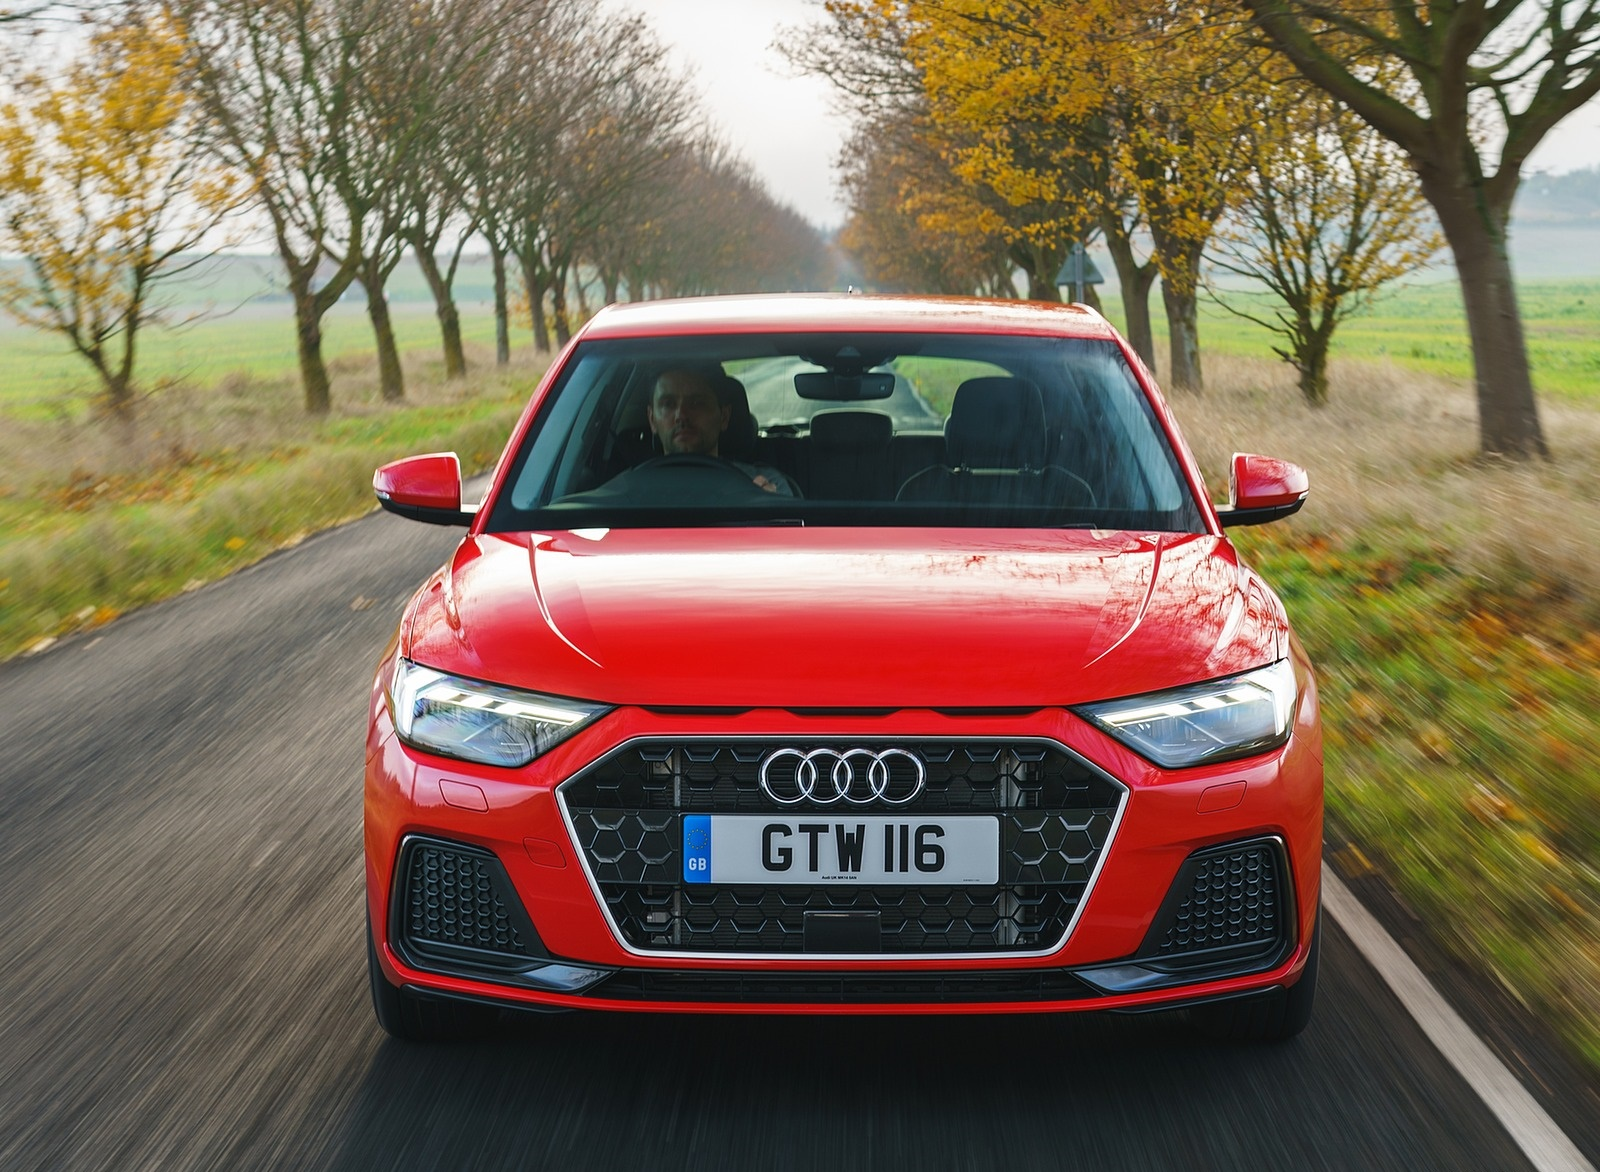 2019 Audi A1 Sportback 30 TFSI (UK-Spec) Front Wallpapers (4)